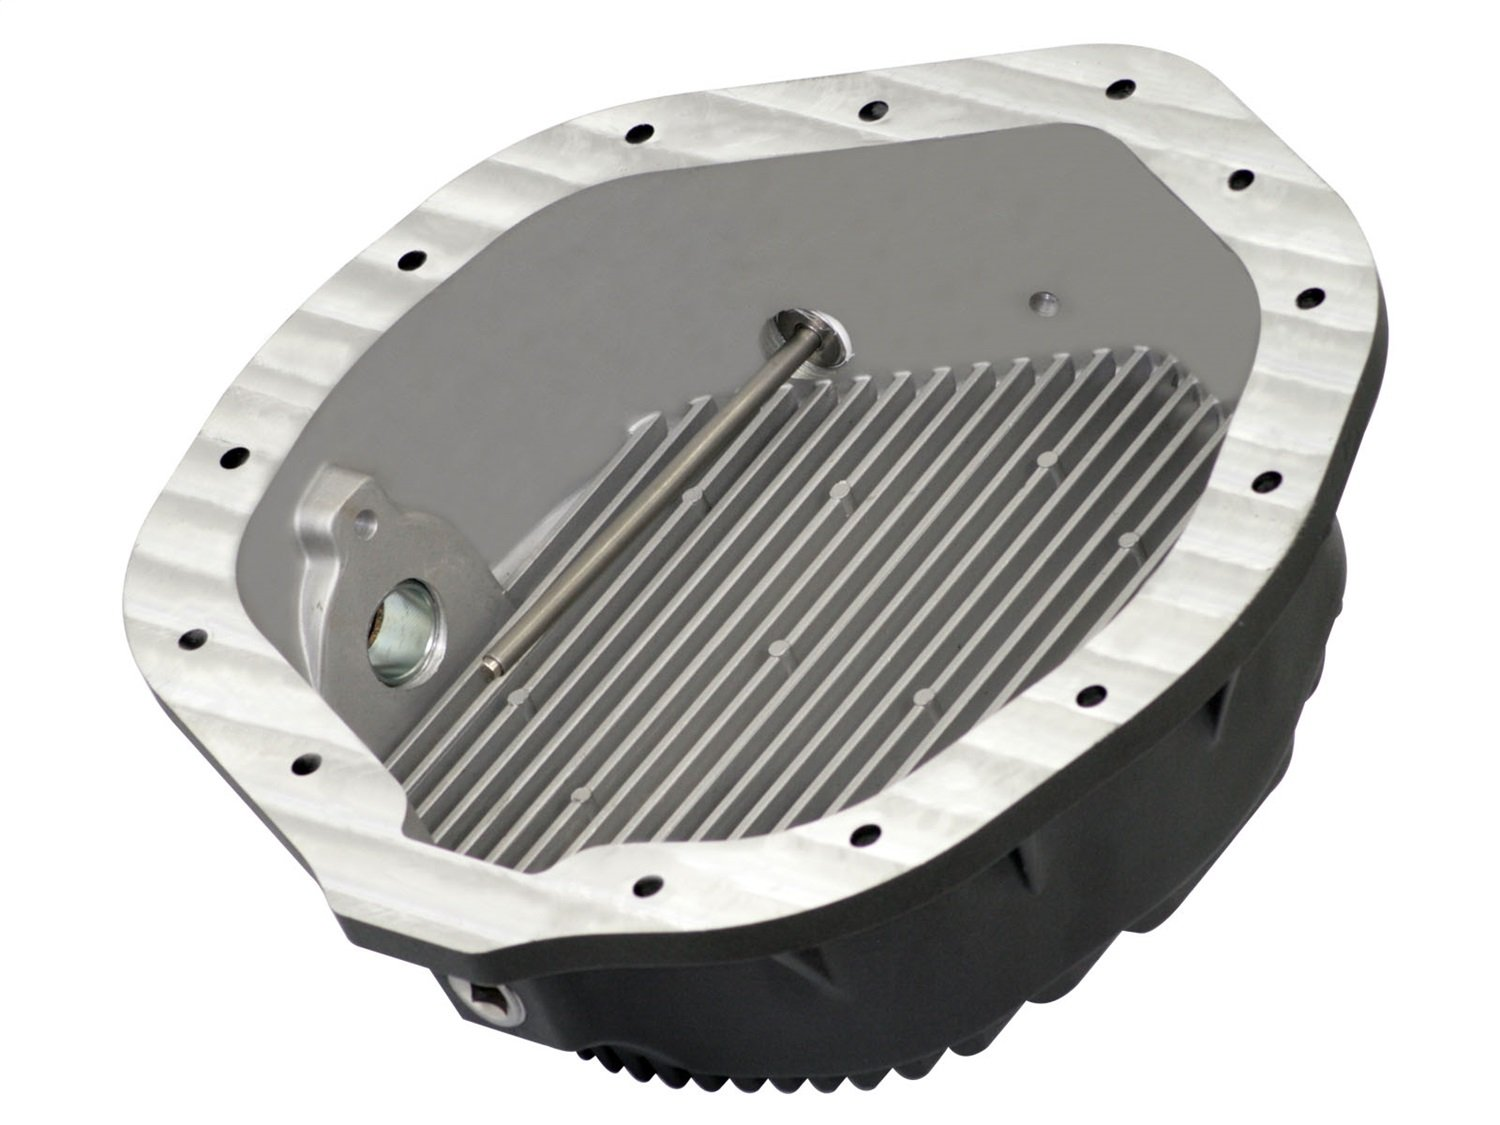 aFe Power 46-70012-WL Pro Series Machined Rear Differential Cover with Gear Oil